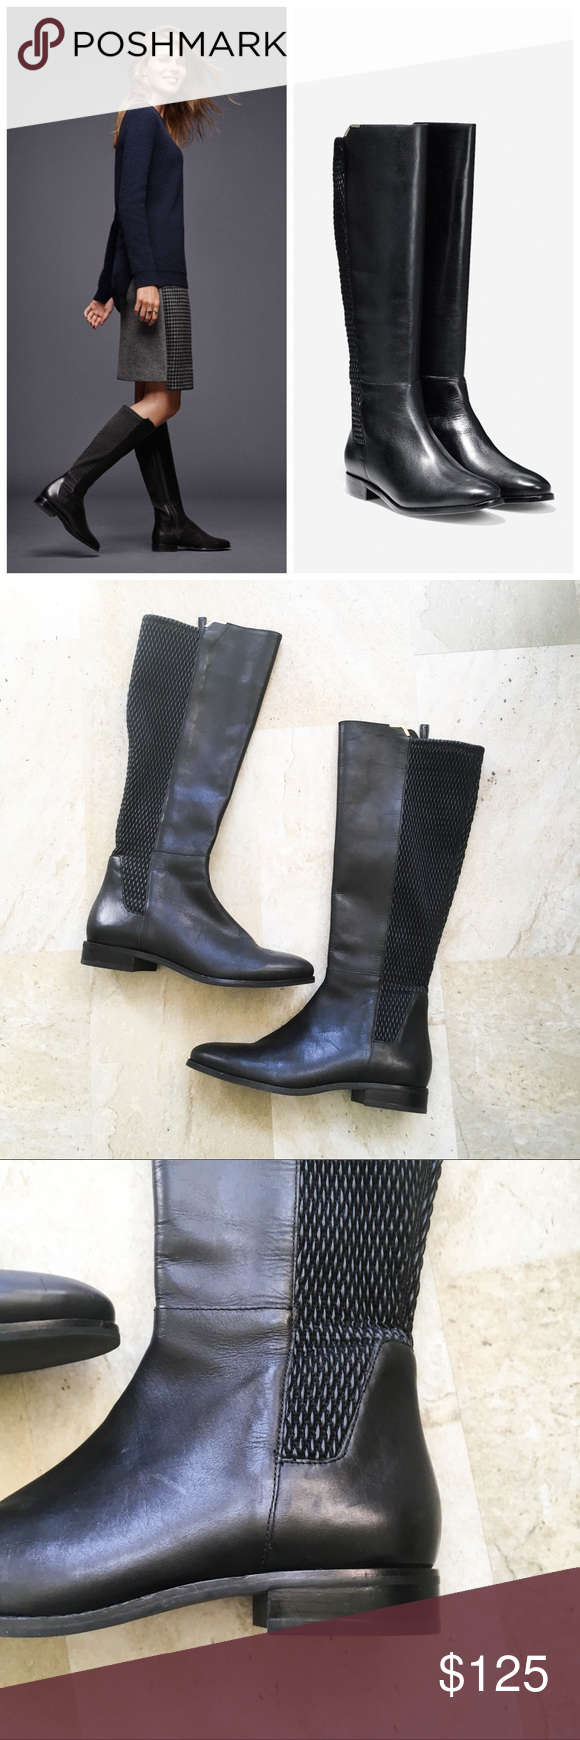 b8d8139e0bb Cole Haan Rockland Boots in Black Leather These are gently used Cole ...